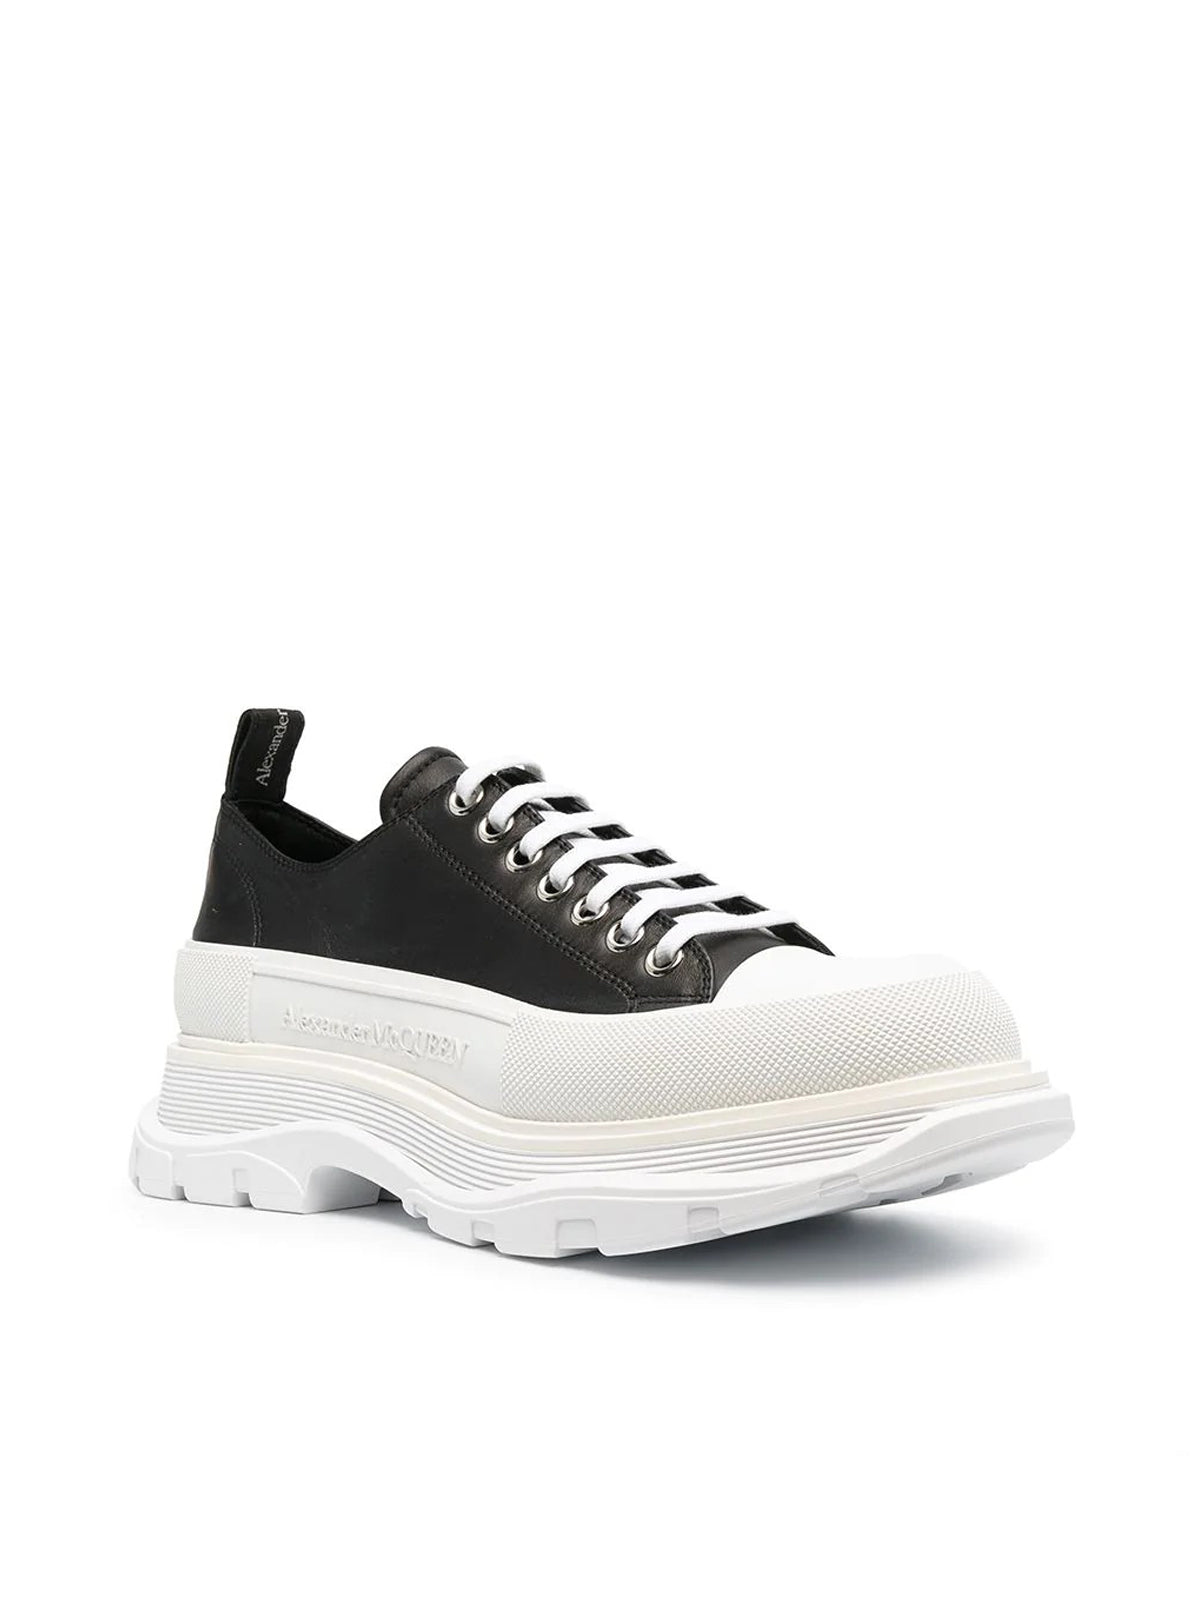 Tread Slick low-top sneakers